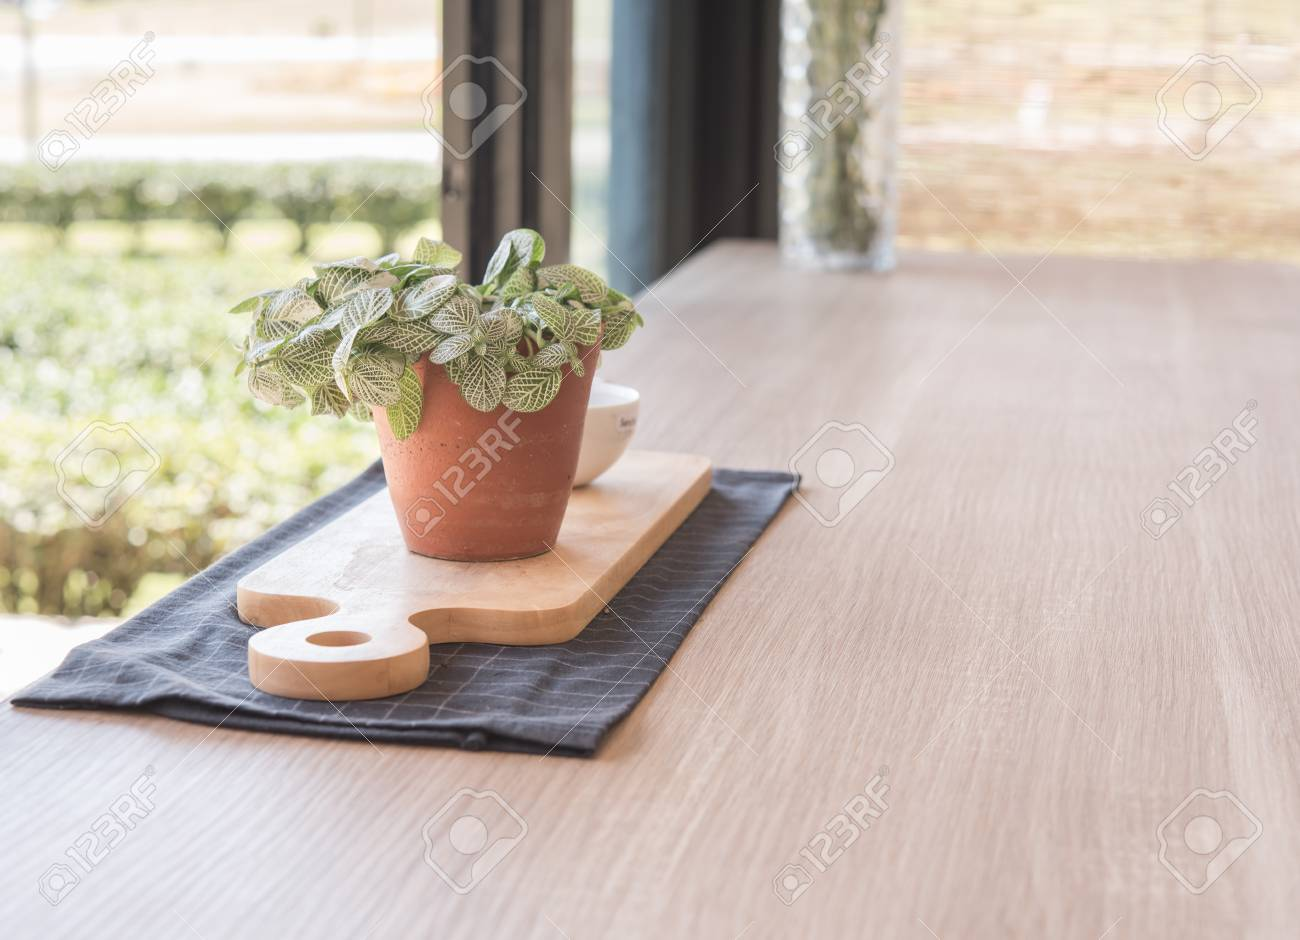 Jardiniere On Wooden Table In Front Of Blurred Background Stock ...